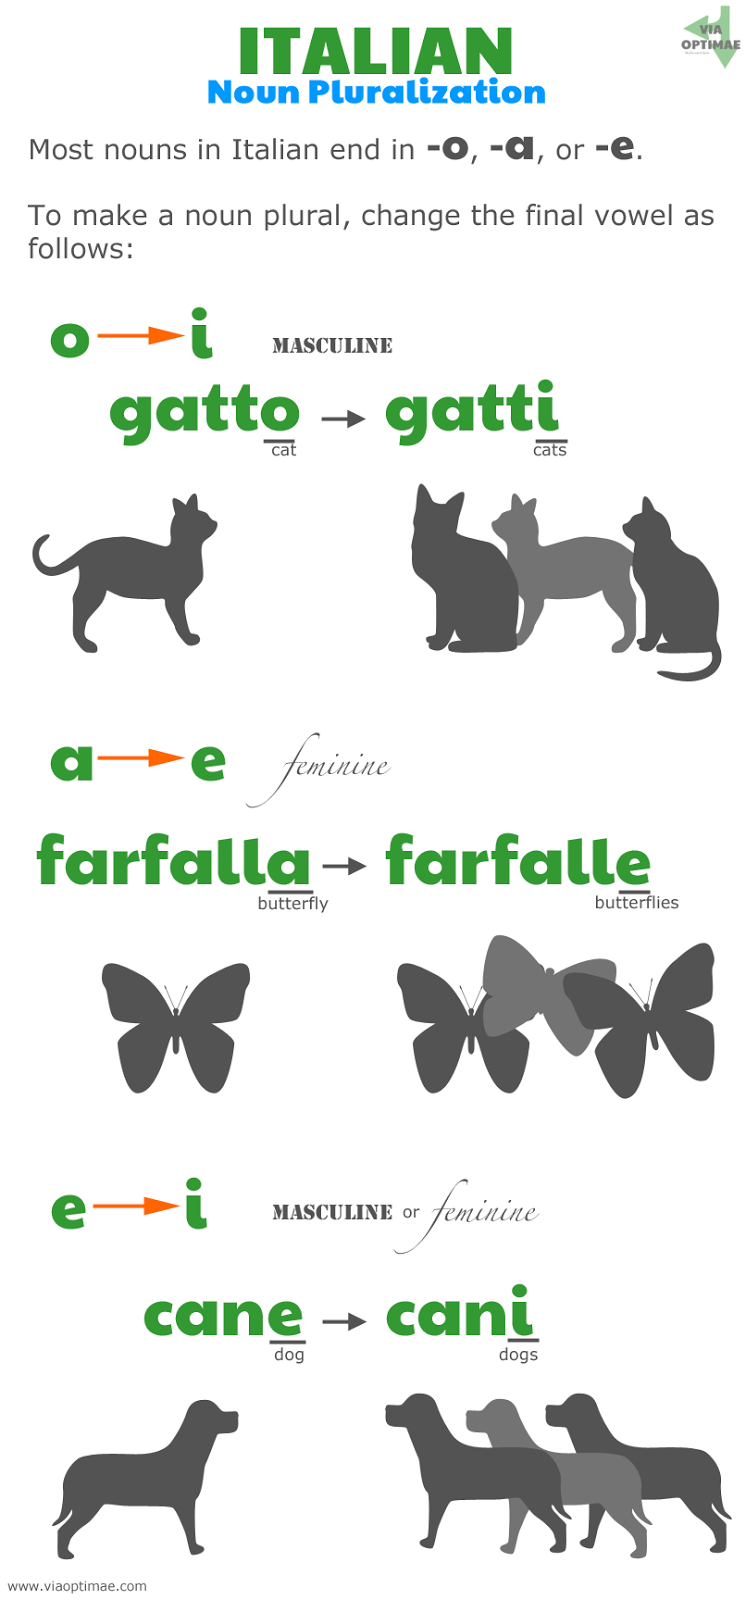 Italian pluralization patterns, Italian plurals: o to i, gatto to gatti; a to e, farfalla to farfalle, e to i, cane to cani; www.viaoptimae.com//2014/04/pluralization.html